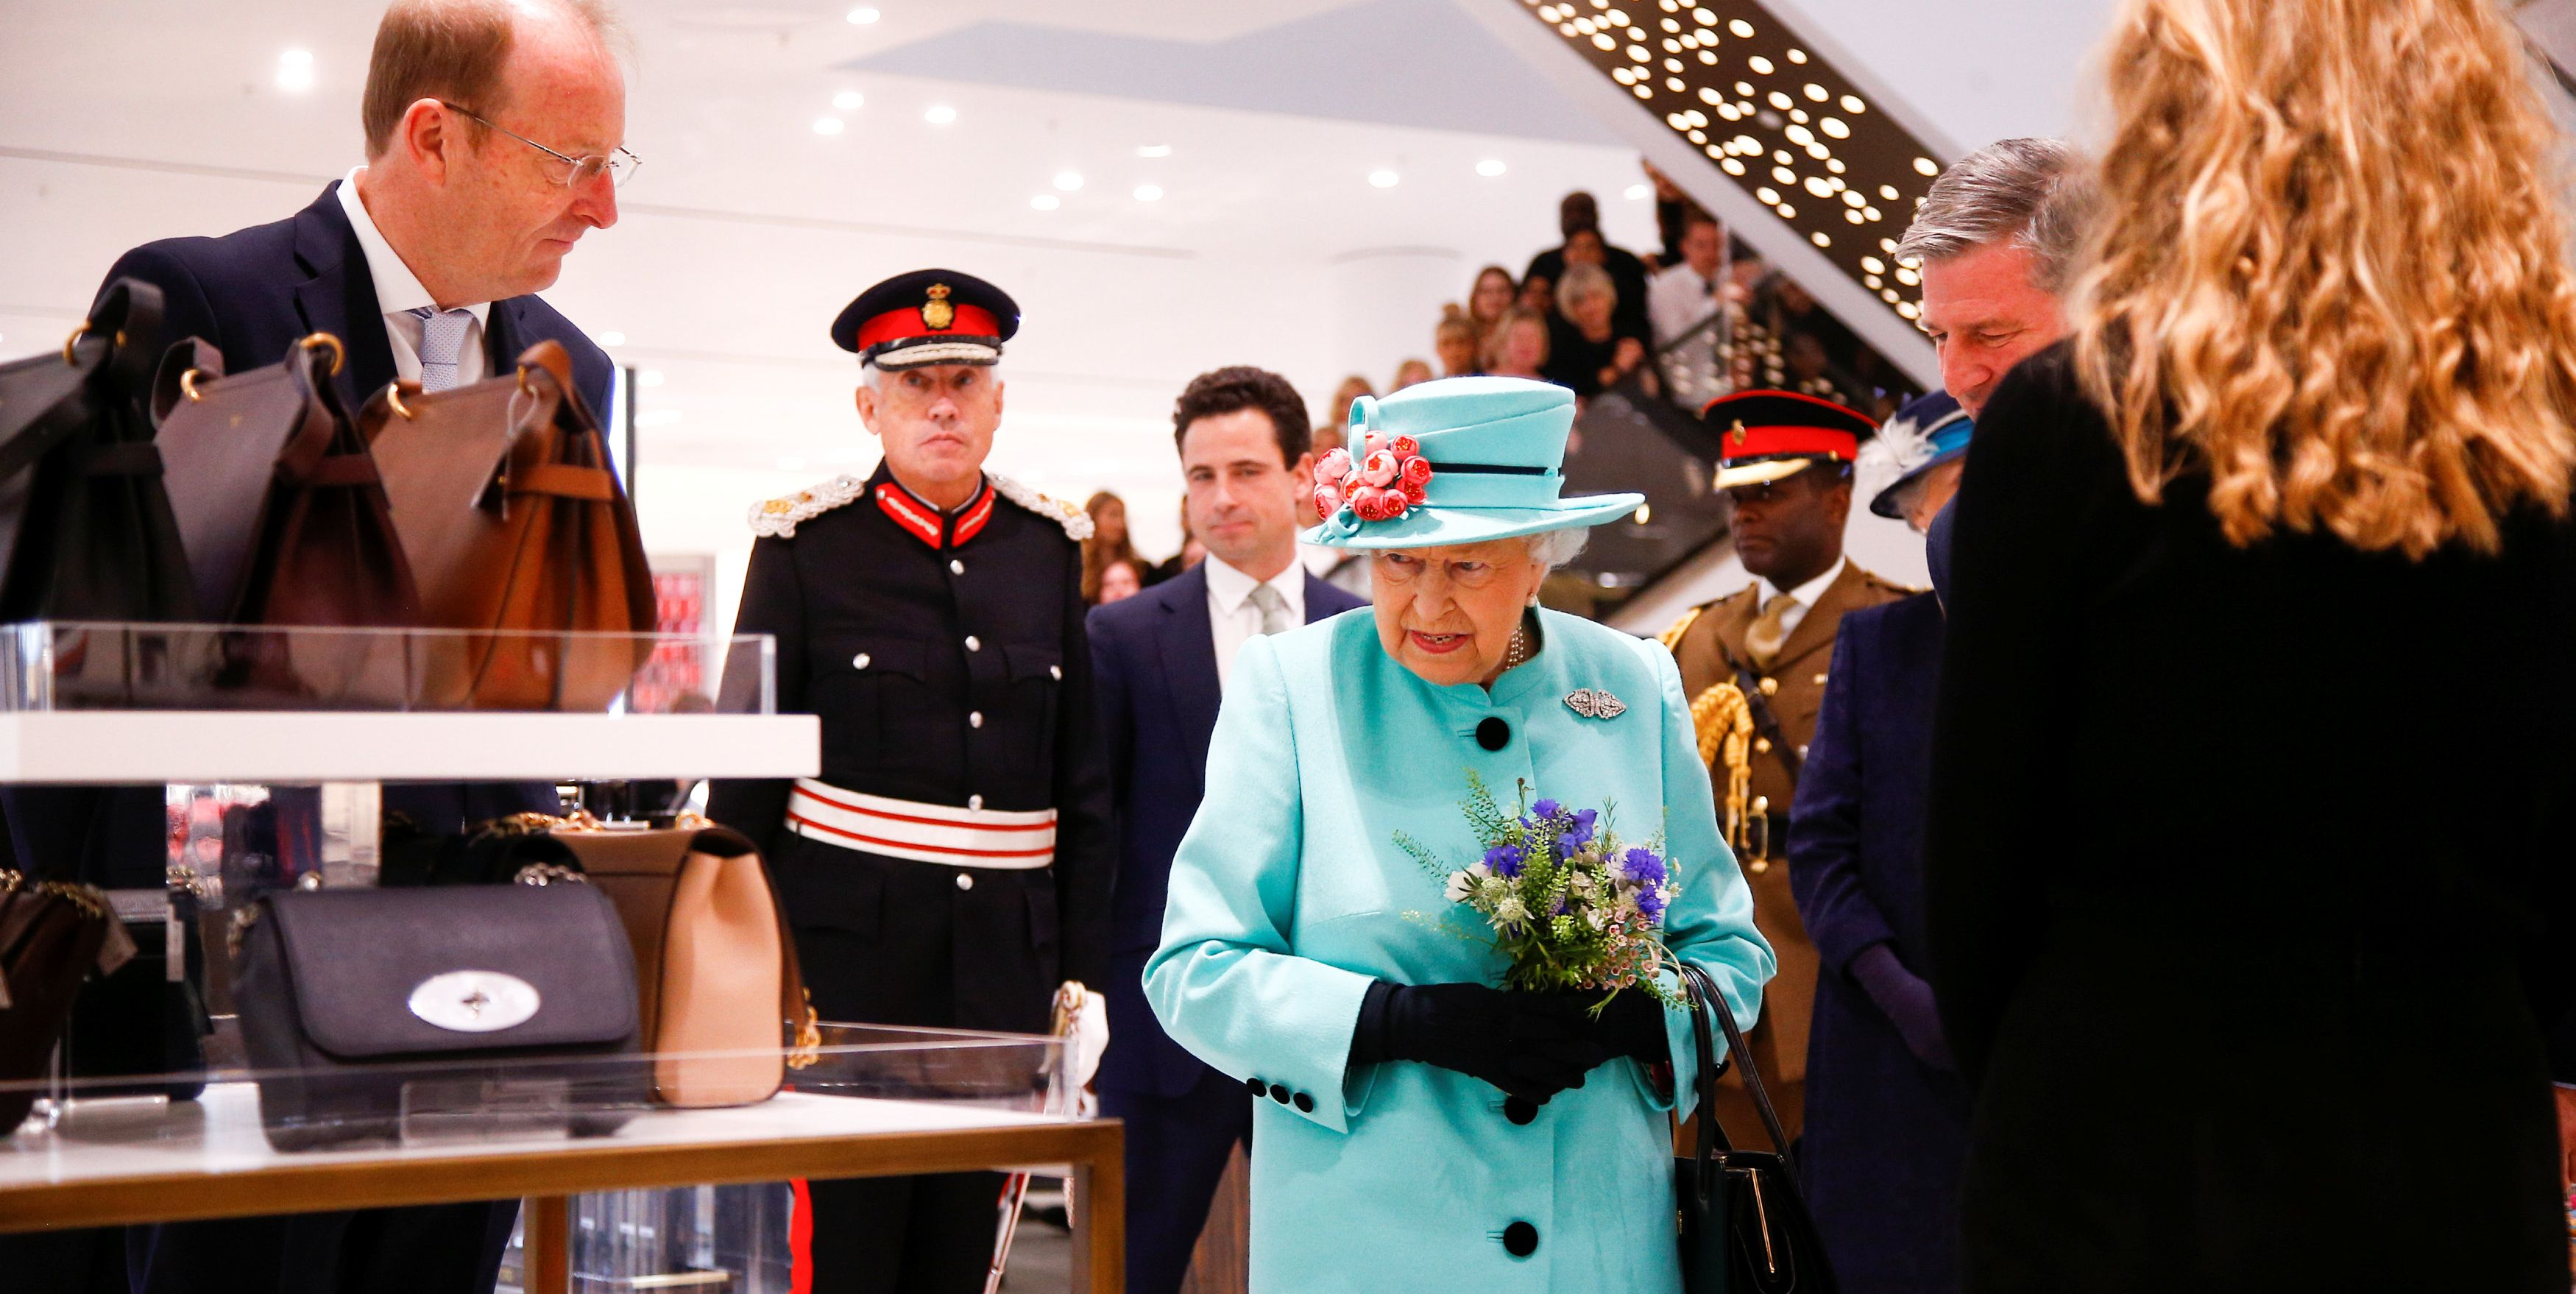 Queen Elizabeth II Browsing Hats and Clutches at the Mall Is a Mood